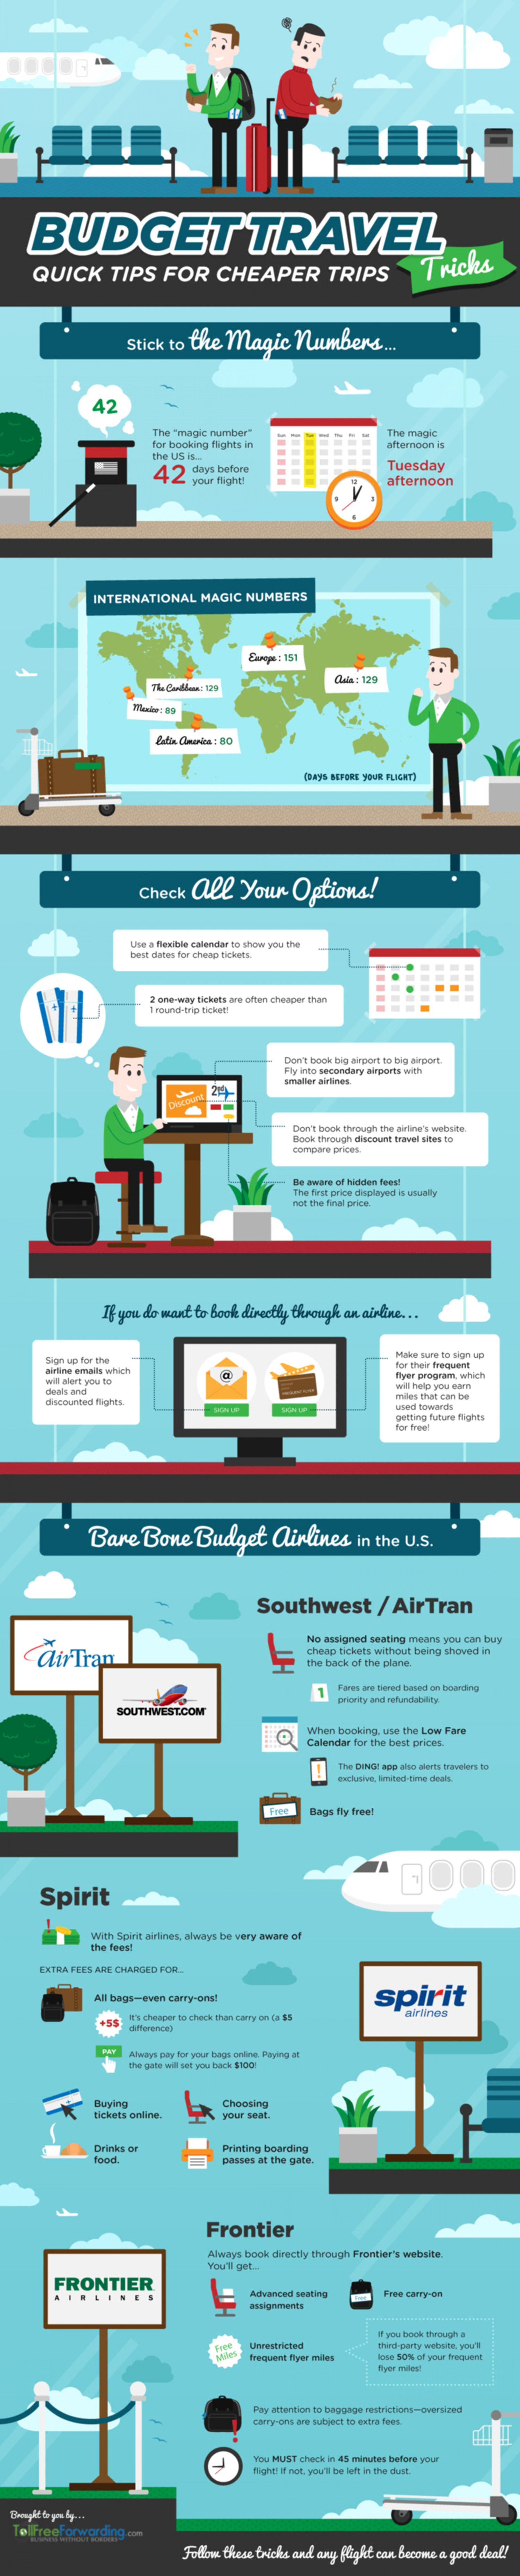 Budget Travel Tricks: Quick Tips for Cheaper Trips Infographic